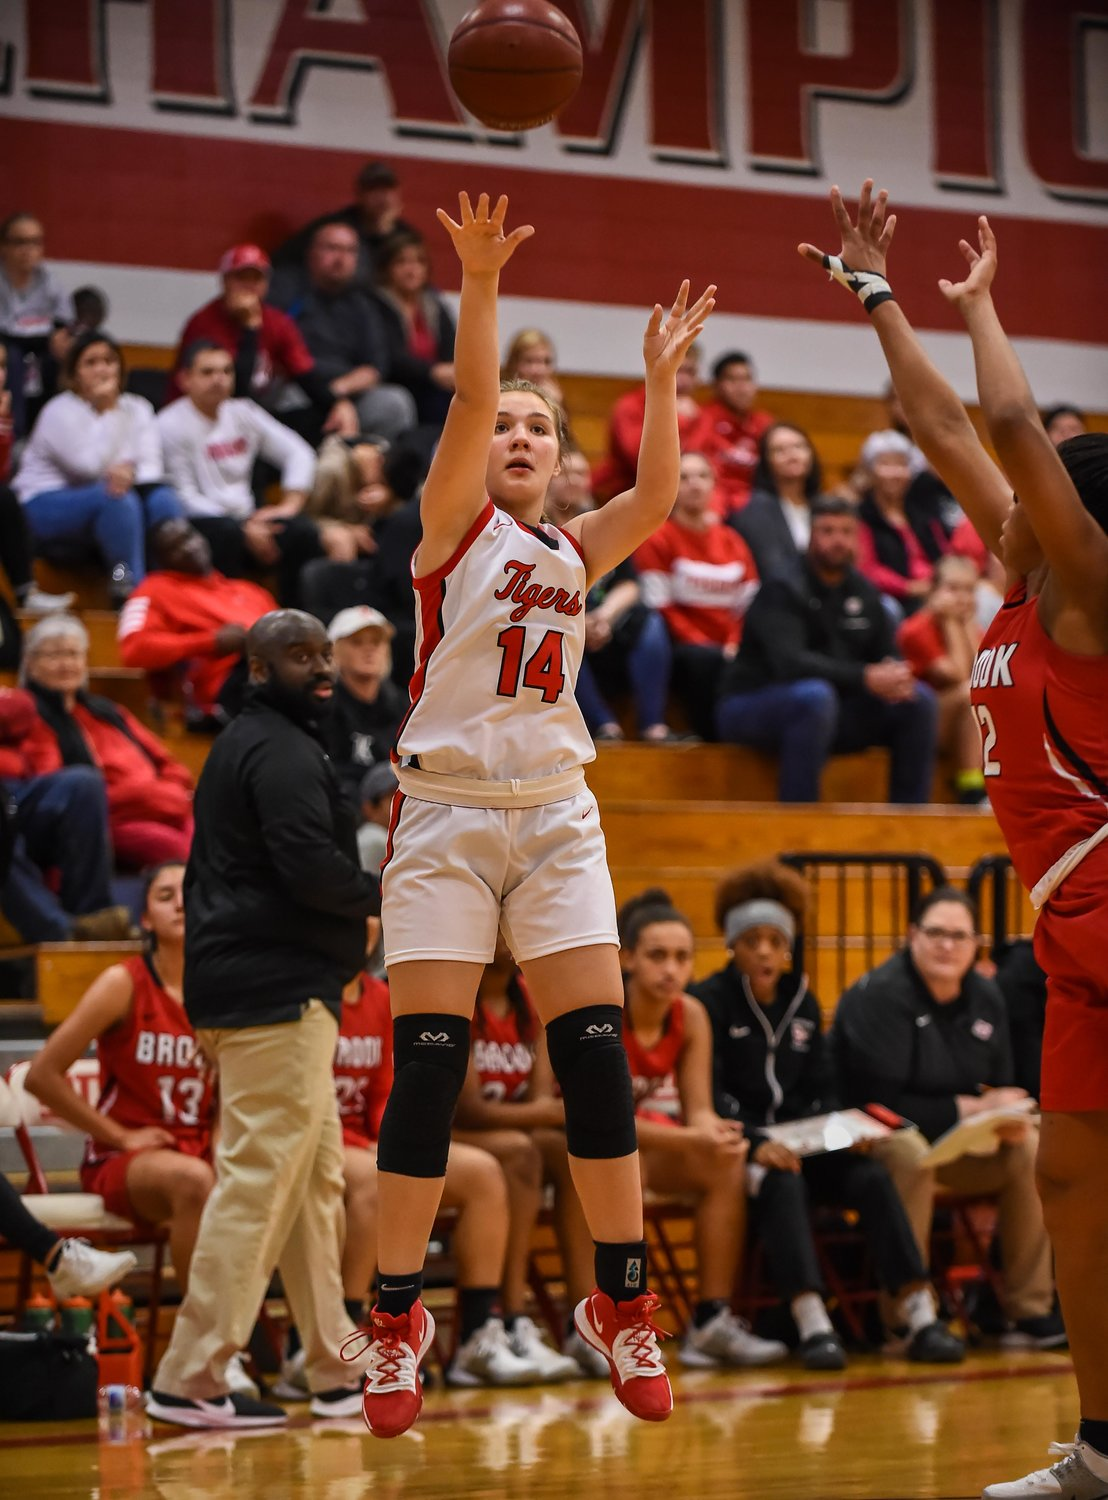 Katy Tx. Dec. 10, 2019: Katy's Darcy Swanson (14) attempts the three point shot during a non-district basketball game between Katy Tigers and Clear Brook Wolverines at Katy HS.  (Photo by Mark Goodman / Katy Times)